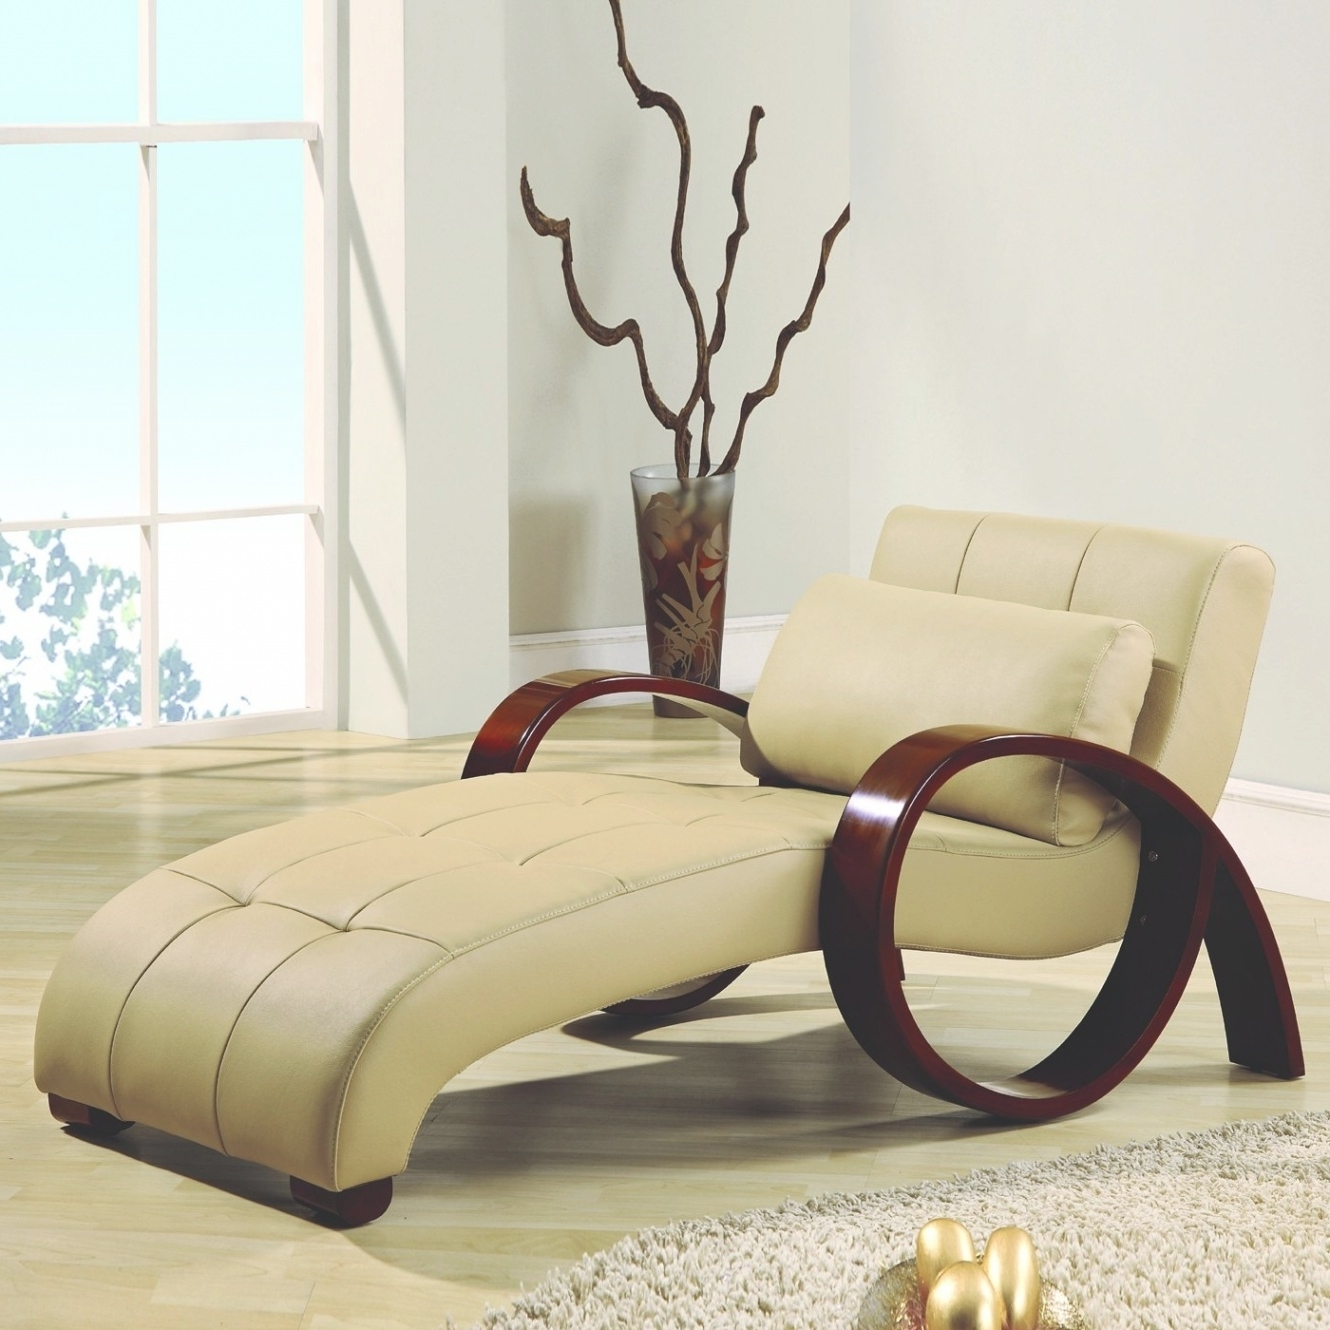 Most Recently Released Unique Indoor Chaise Lounge Chairs Pertaining To Contemporary Chaise Lounge Chairs Indoor Unique Wood Arms Solid (View 15 of 15)